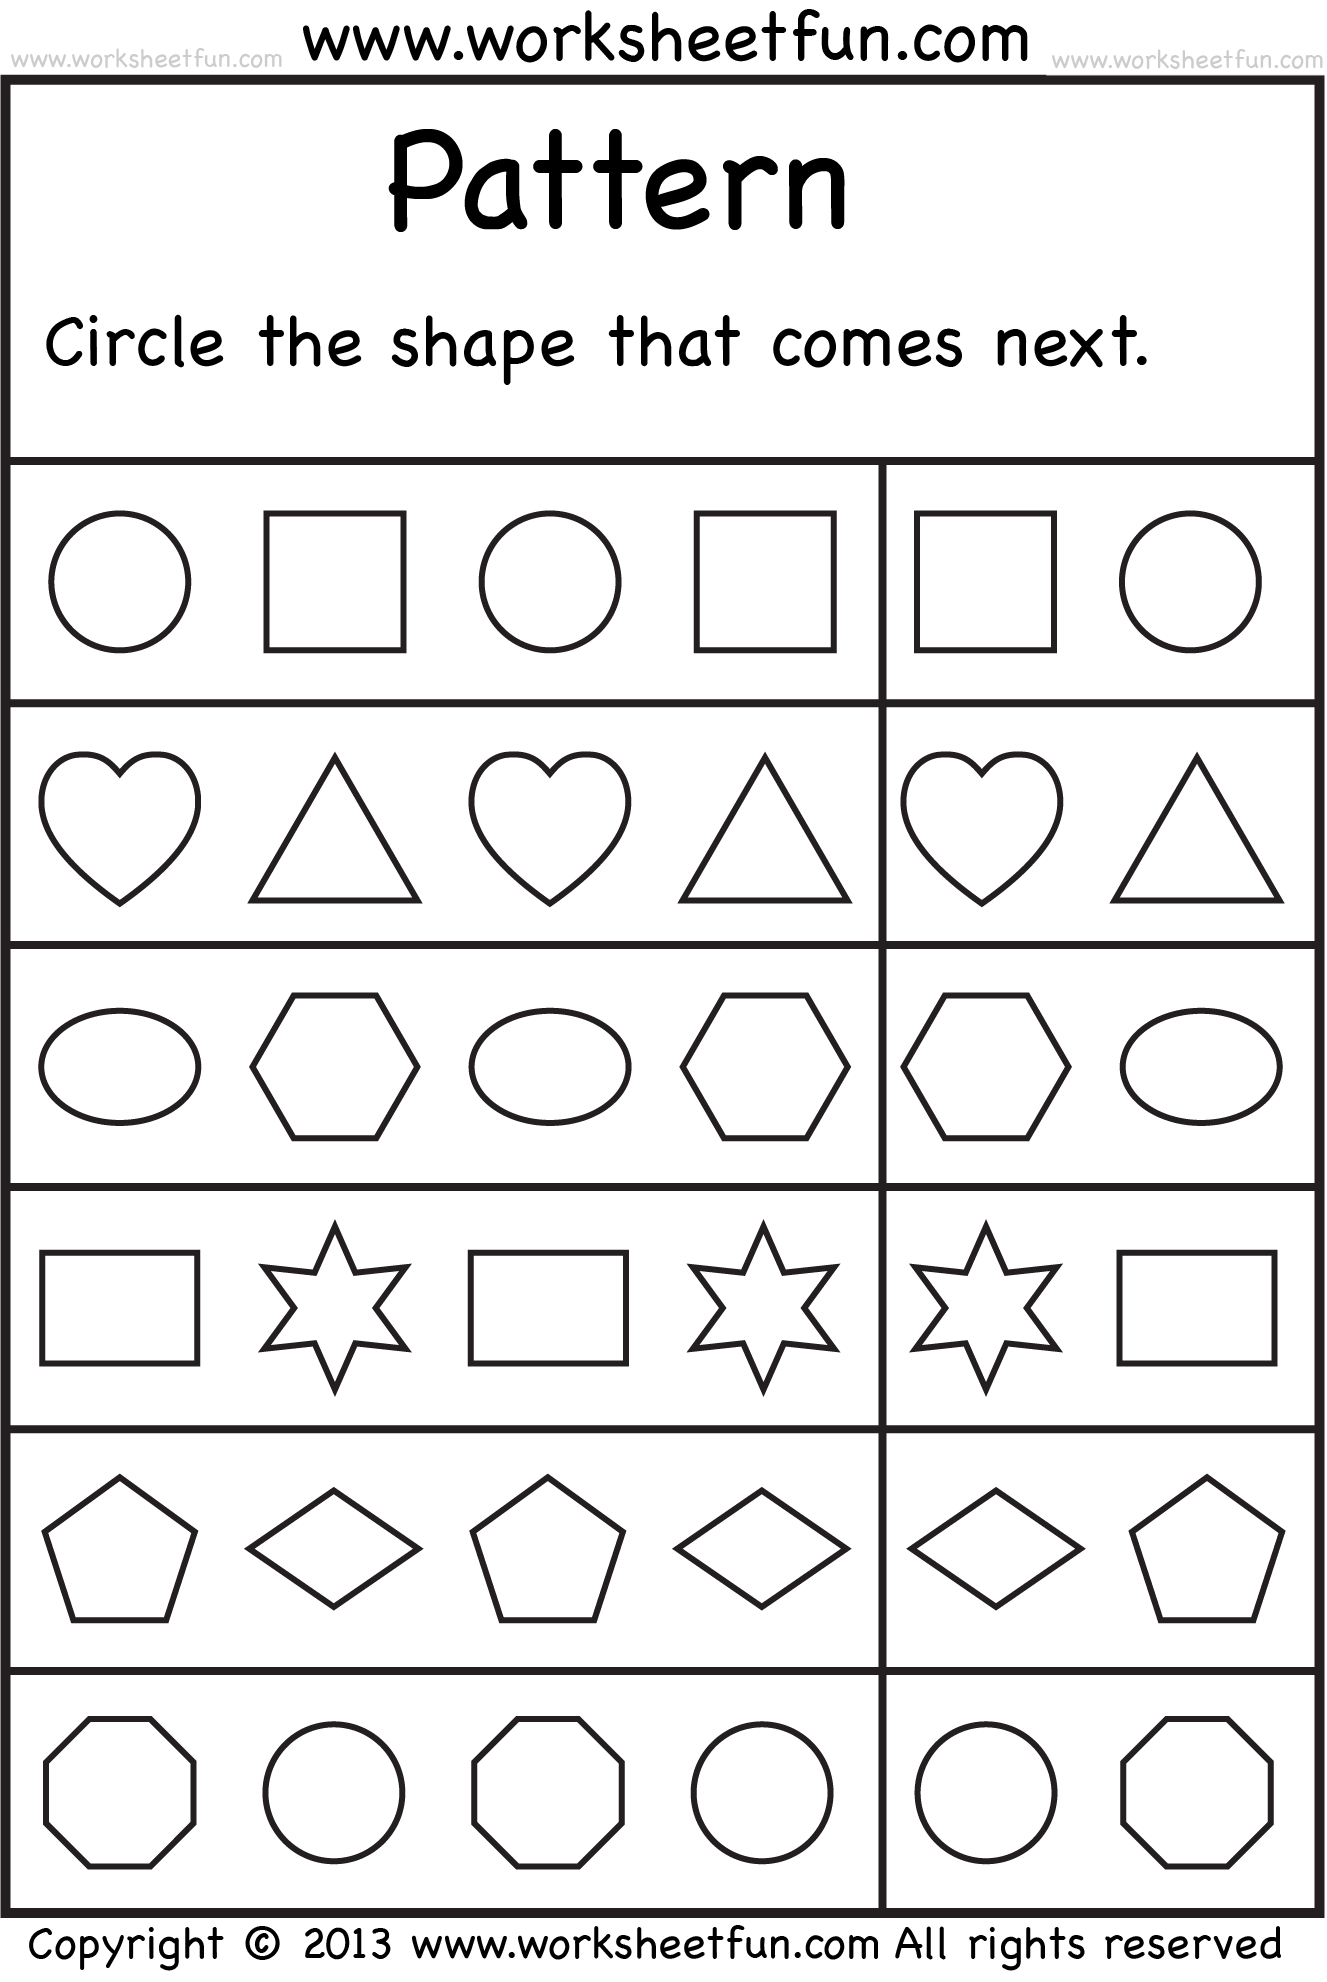 Proatmealus  Ravishing  Images About School Worksheets On Pinterest  Number Words  With Excellent  Images About School Worksheets On Pinterest  Number Words Alphabet Worksheets And Free Printable Kindergarten Worksheets With Amazing    Triangles Worksheet Also Balancing Chemical Equations Chapter  Worksheet  In Addition Math Place Value Worksheets And Congruent Angles Worksheet As Well As Character Study Worksheet Additionally Sets Of Real Numbers Worksheet From Pinterestcom With Proatmealus  Excellent  Images About School Worksheets On Pinterest  Number Words  With Amazing  Images About School Worksheets On Pinterest  Number Words Alphabet Worksheets And Free Printable Kindergarten Worksheets And Ravishing    Triangles Worksheet Also Balancing Chemical Equations Chapter  Worksheet  In Addition Math Place Value Worksheets From Pinterestcom